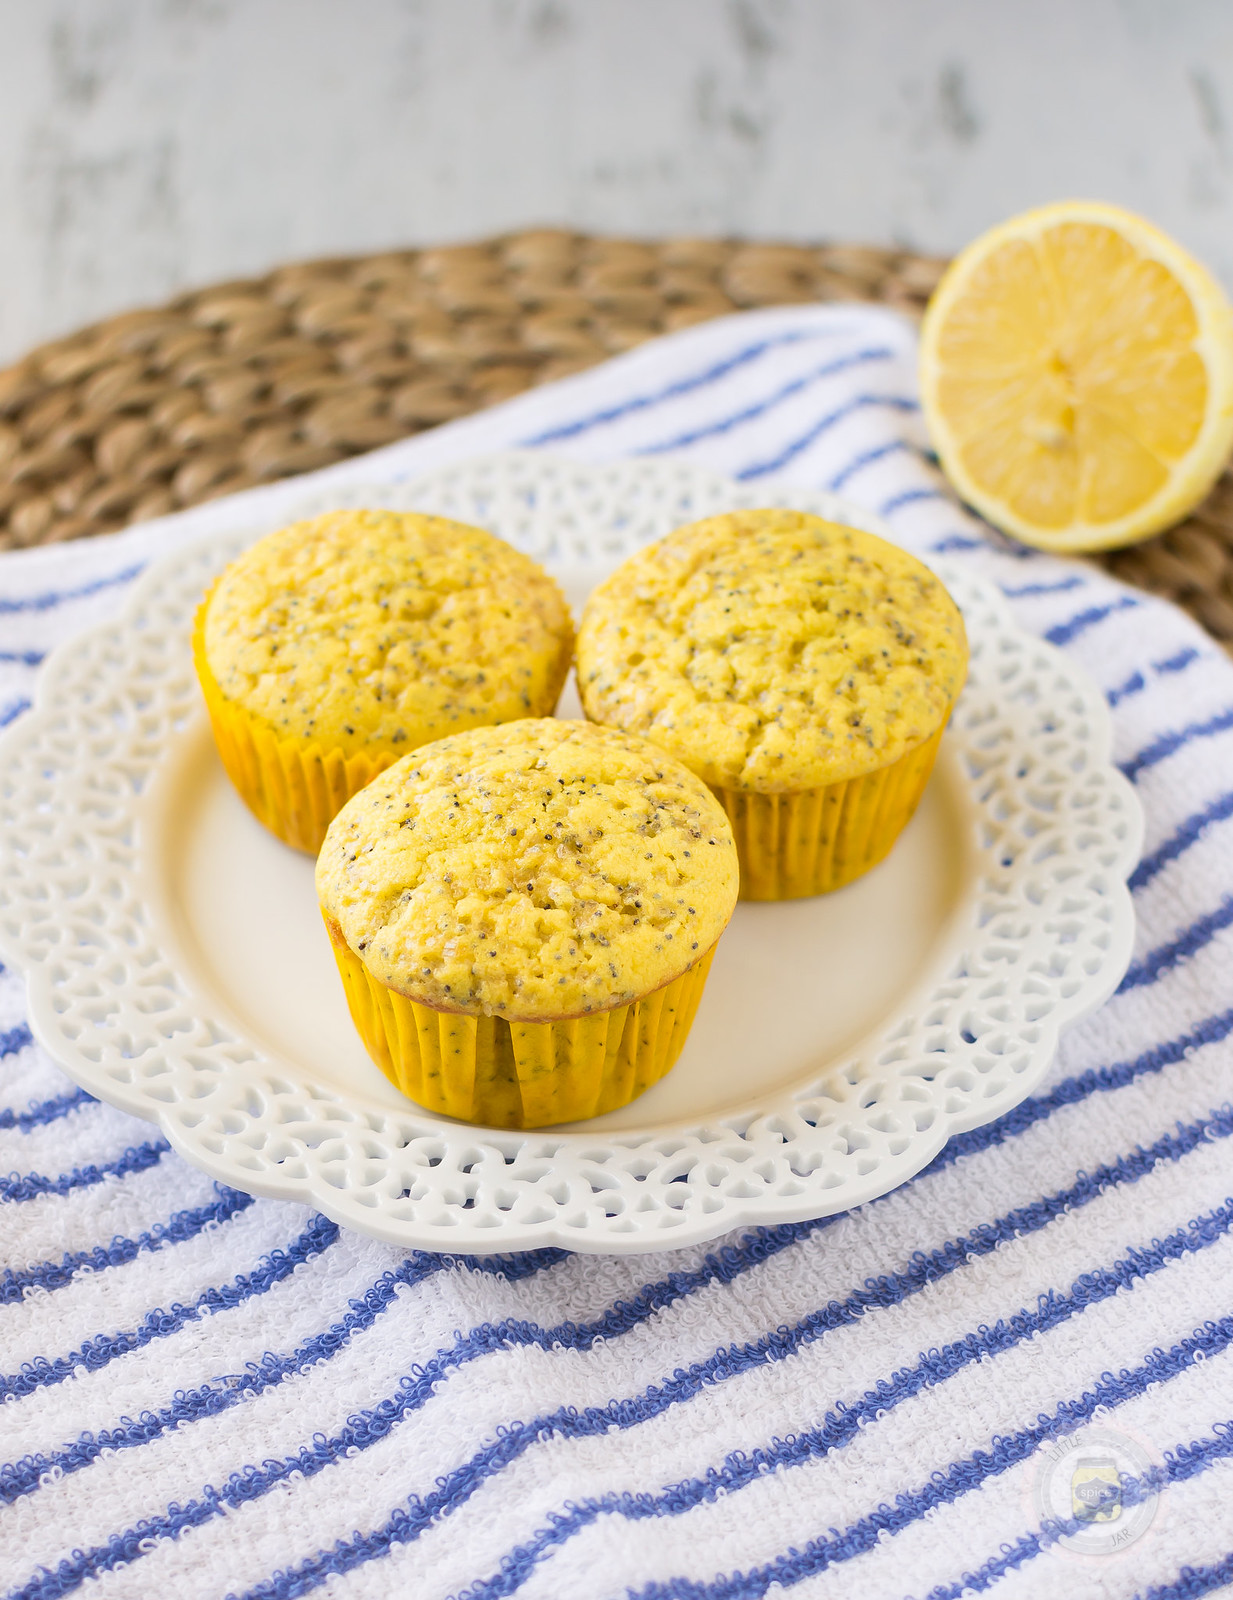 three lemon poppy seed muffins on doily plate on striped hand towel